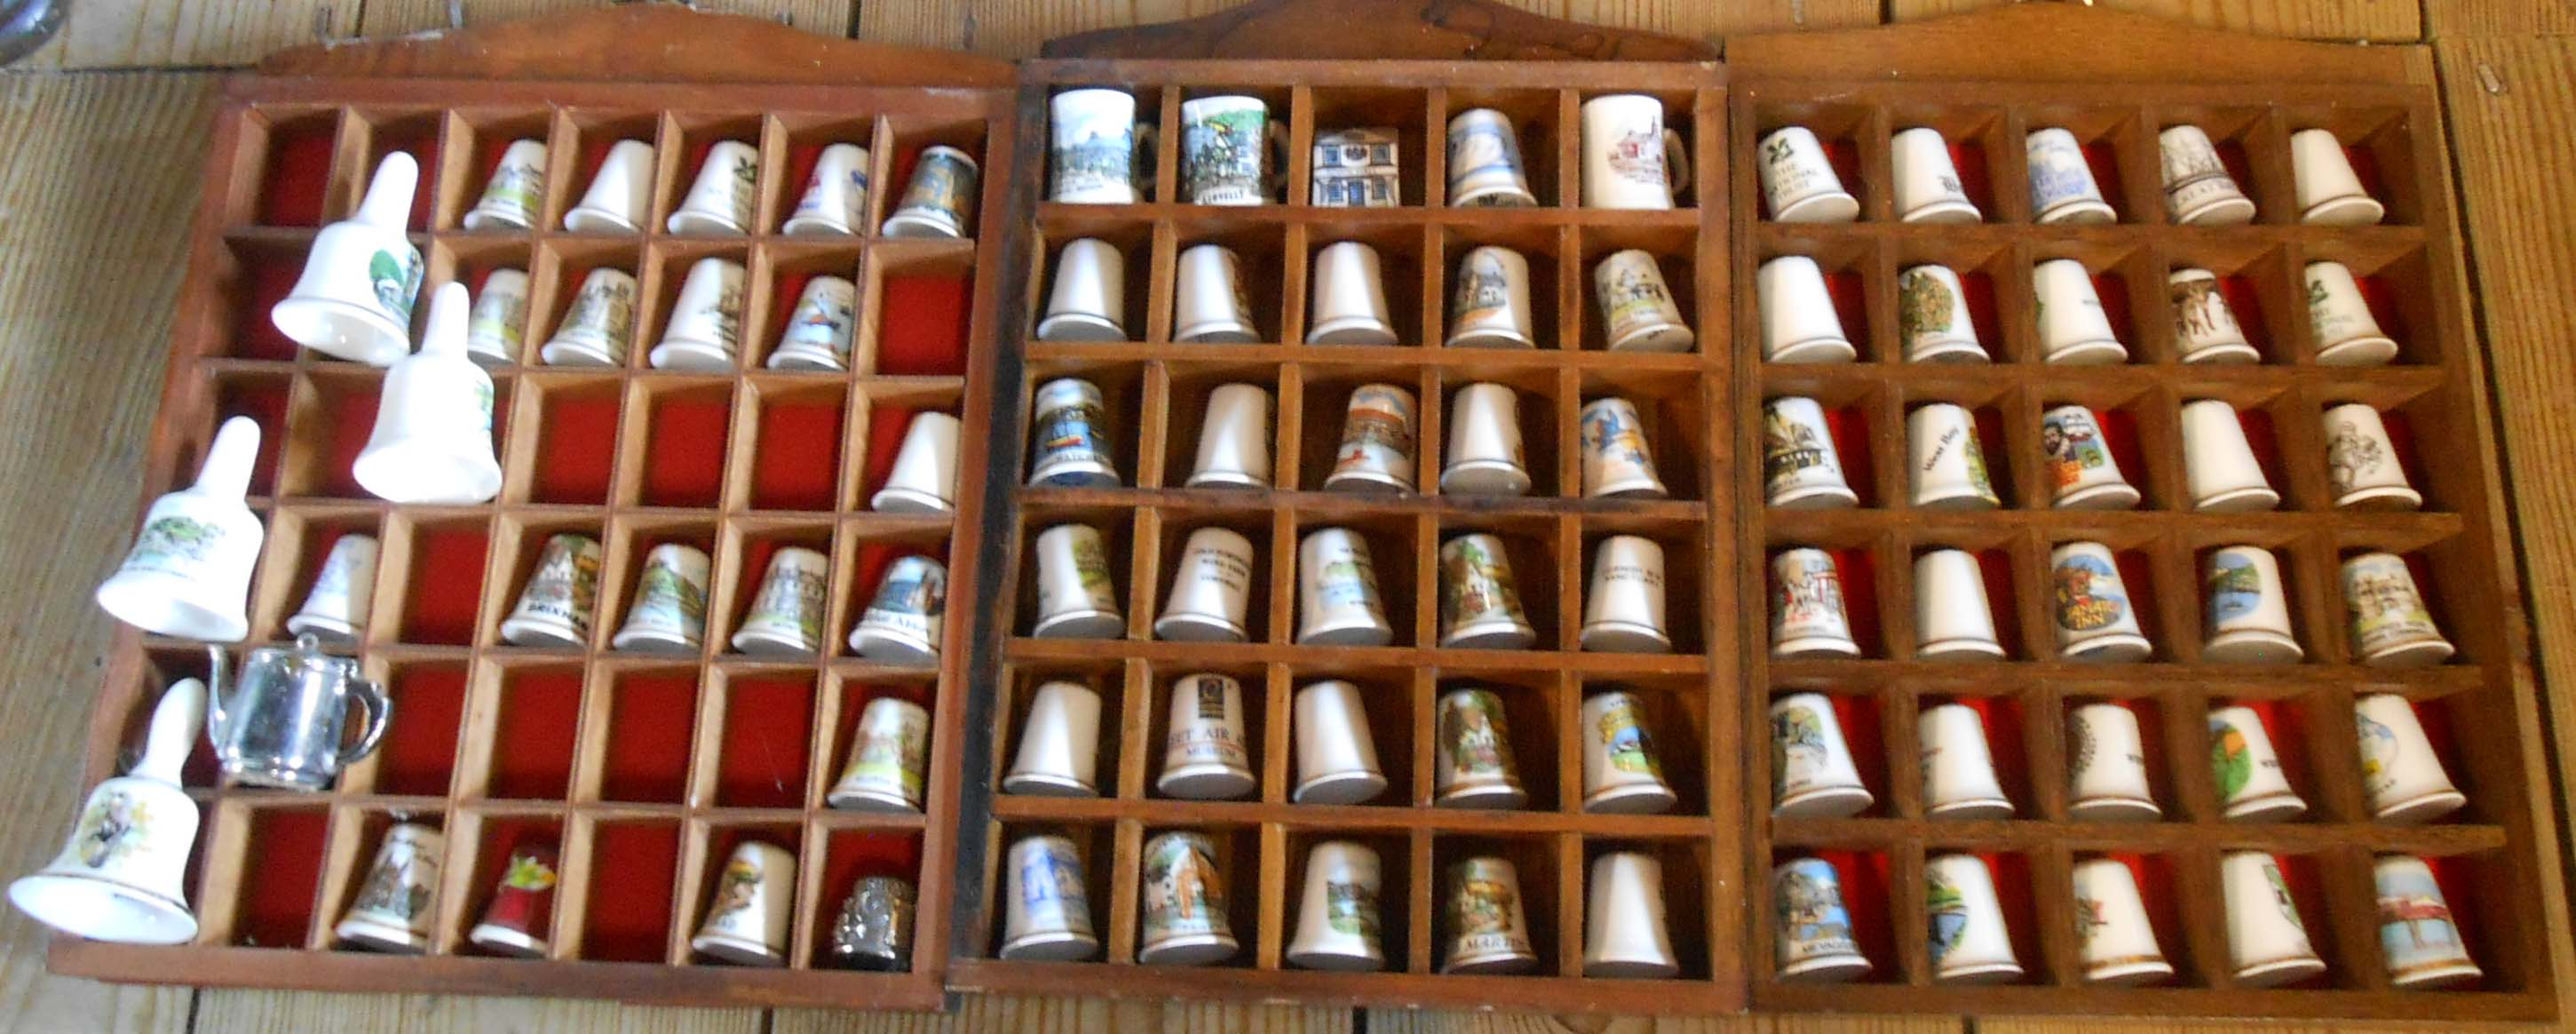 Three racks of mainly ceramic collectable thimbles